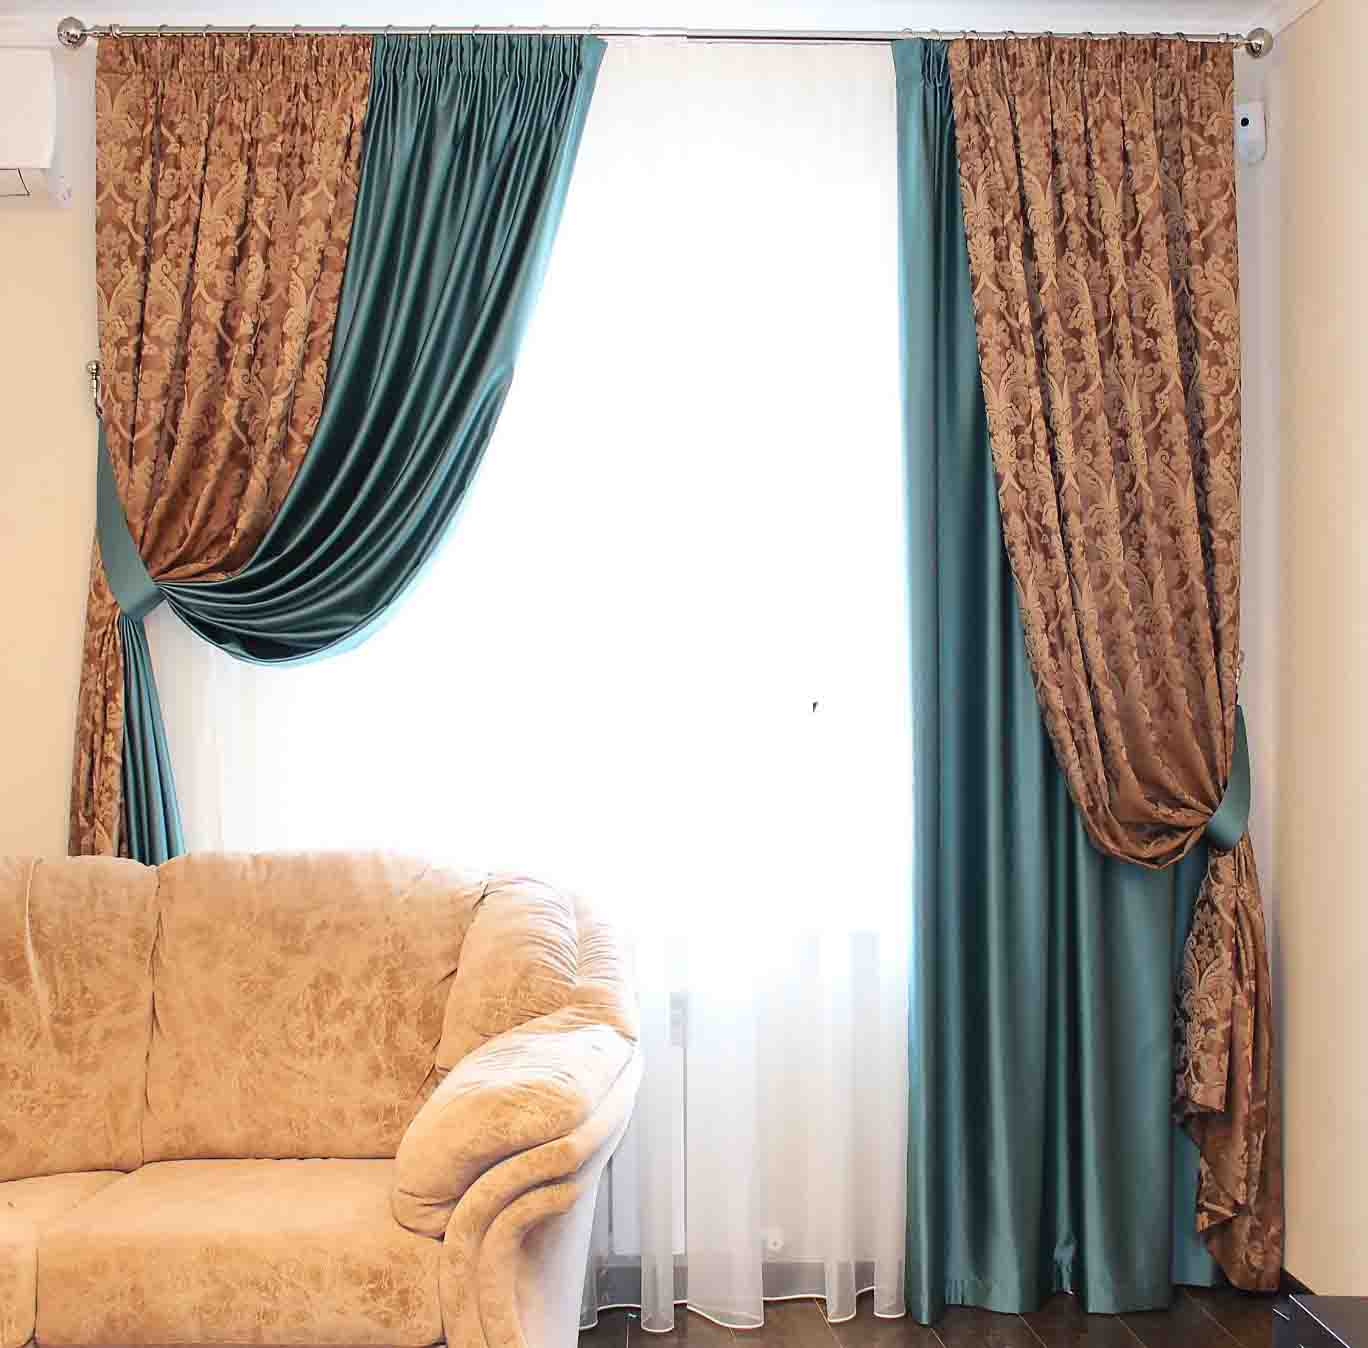 tulle other furniture cgtrader max models fbx and modern model curtain curtains